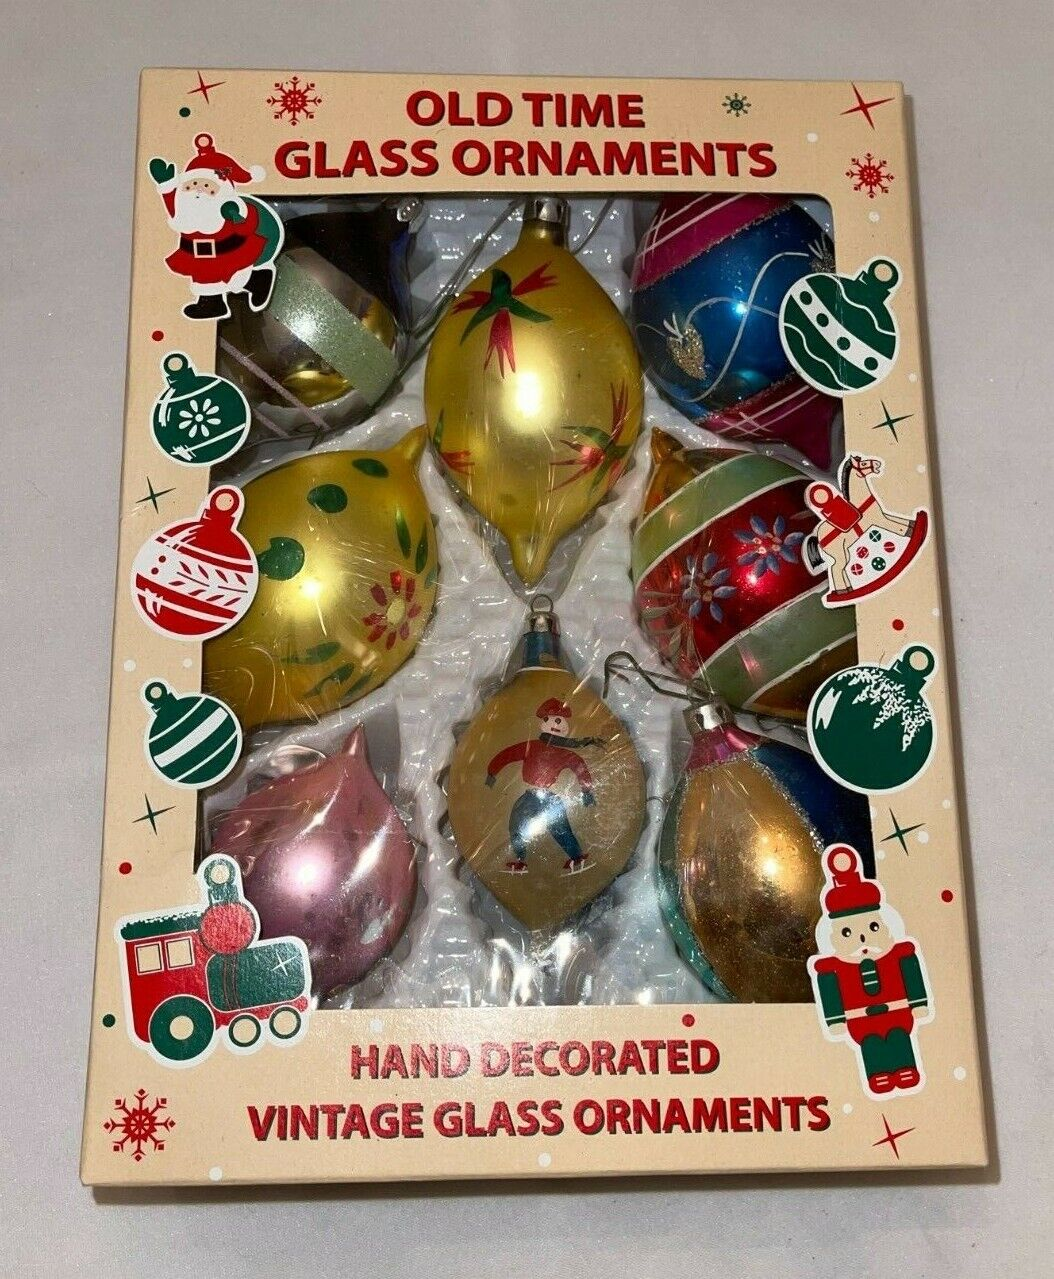 Vintage Christmas Ornament Glass Yellow and Gold Teardrop Made In Poland Christmas Ornament Box 14...